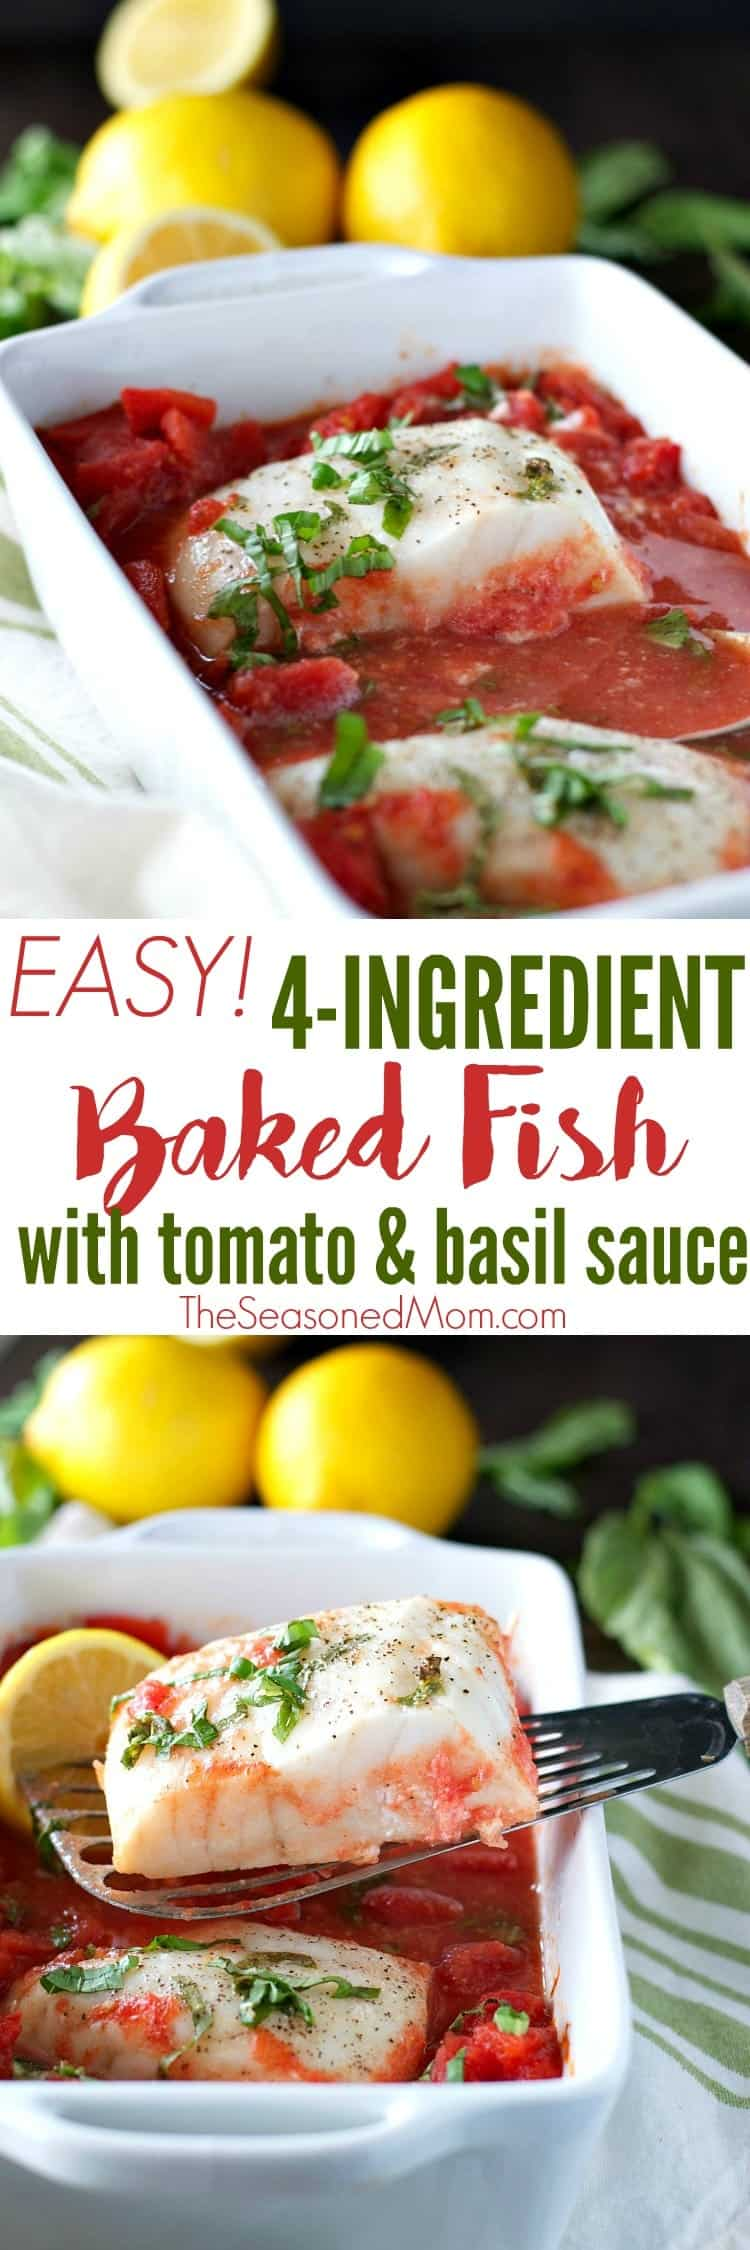 You only need 4 ingredients, one dish, and about 10 minutes to prepare a delicious seafood supper! This Baked Fish with Tomato and Basil Sauce is a healthy dinner that's full of nutritious, clean eating ingredients for an easy and low calorie weeknight meal!